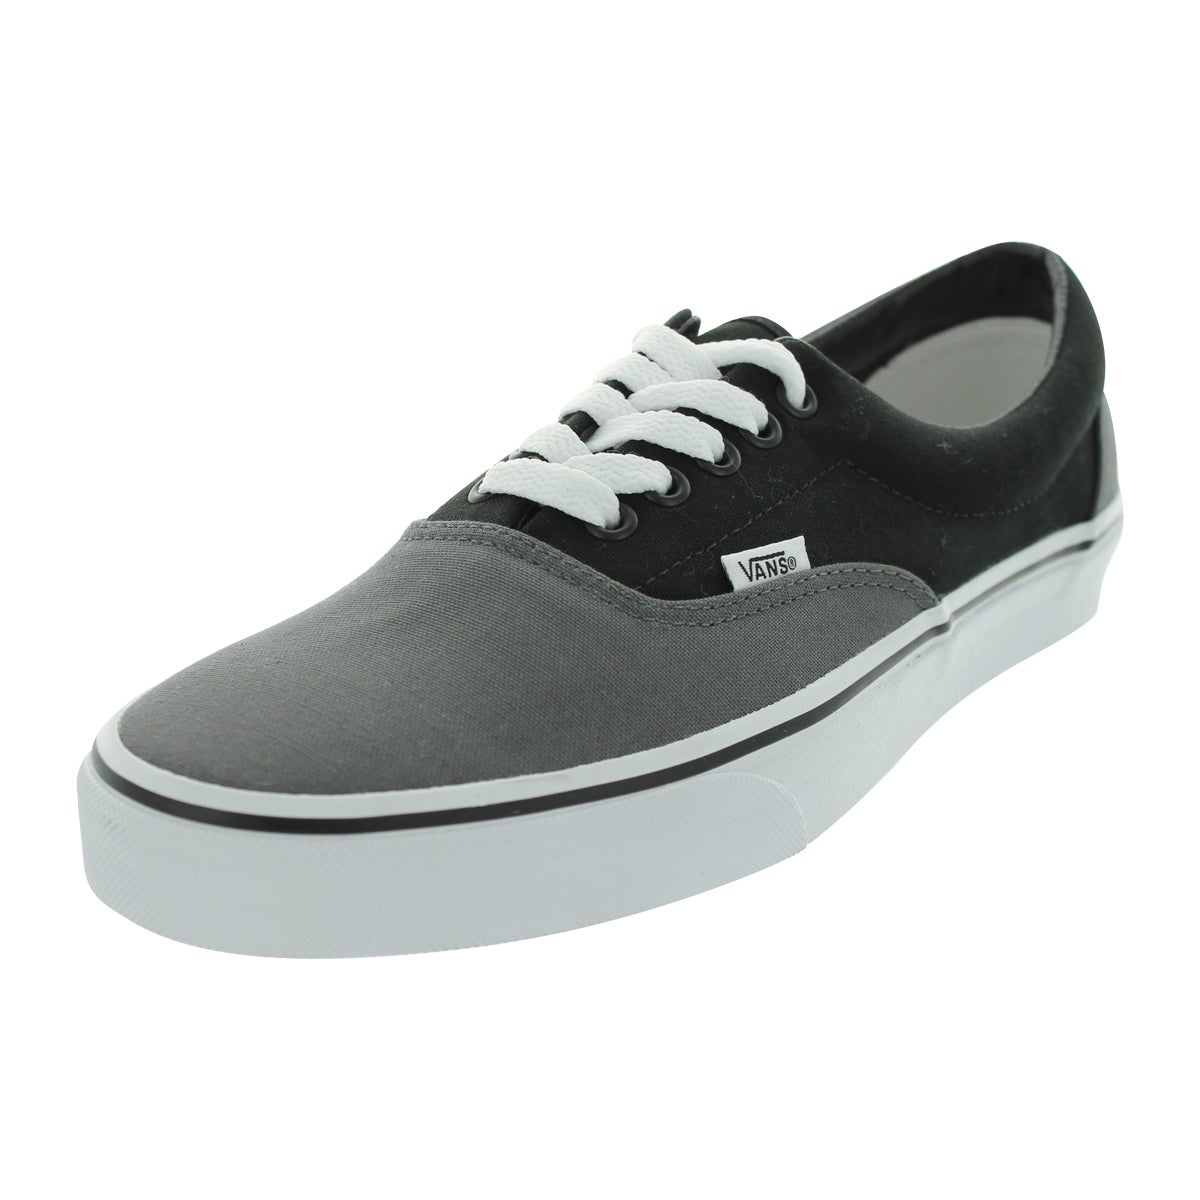 Vans Era Skate Shoes (Pewter/Black) (7/8.5), Men's, Grey ...